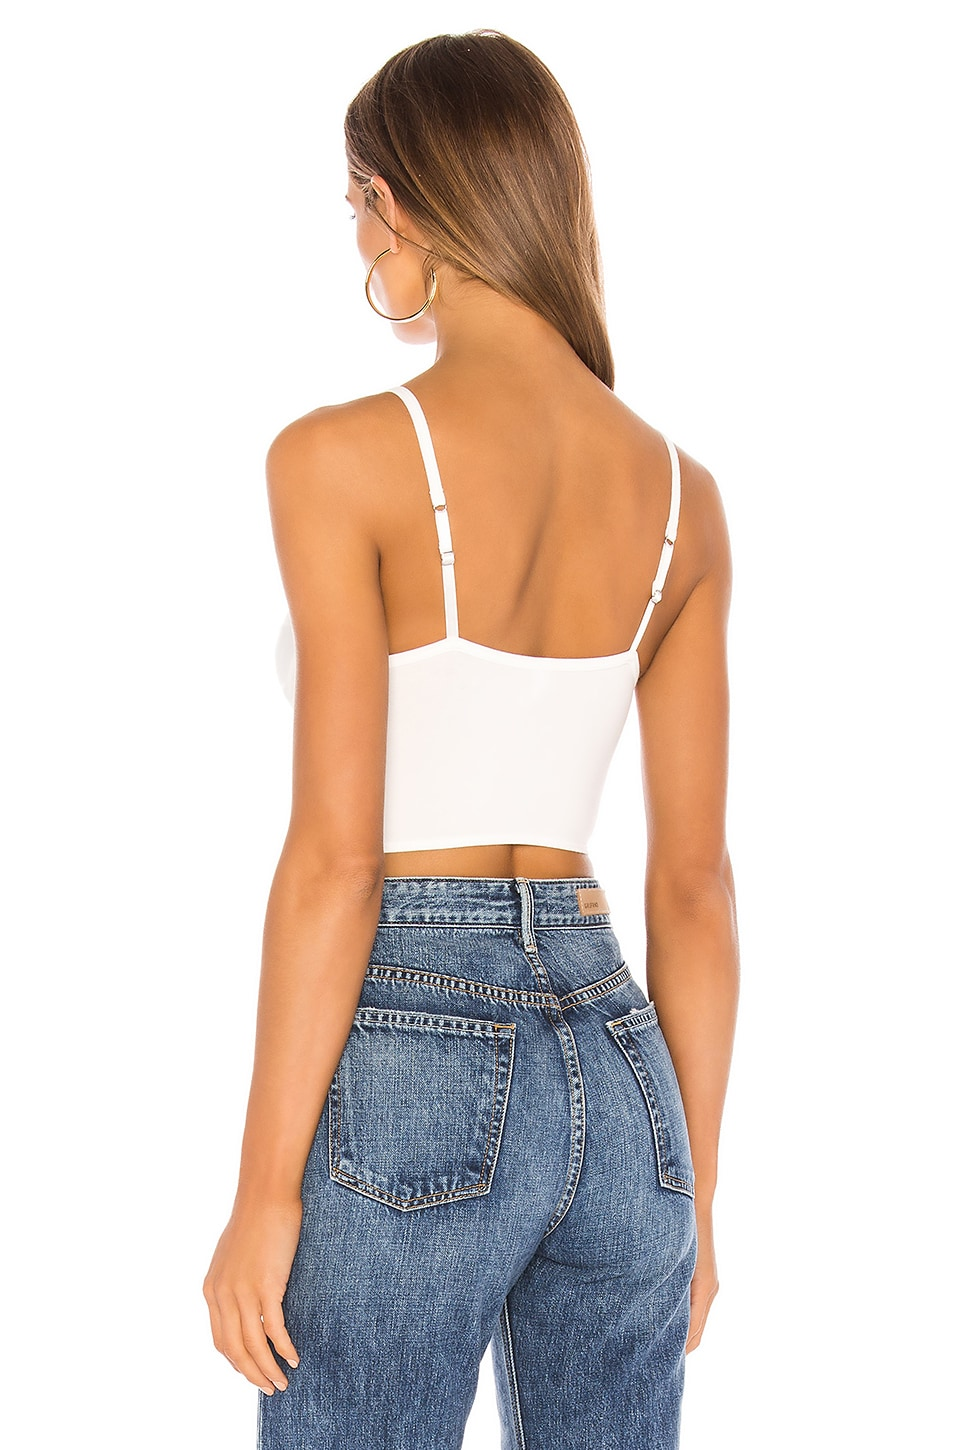 Cutlass Solid Bustier Crop Tank, view 3, click to view large image.